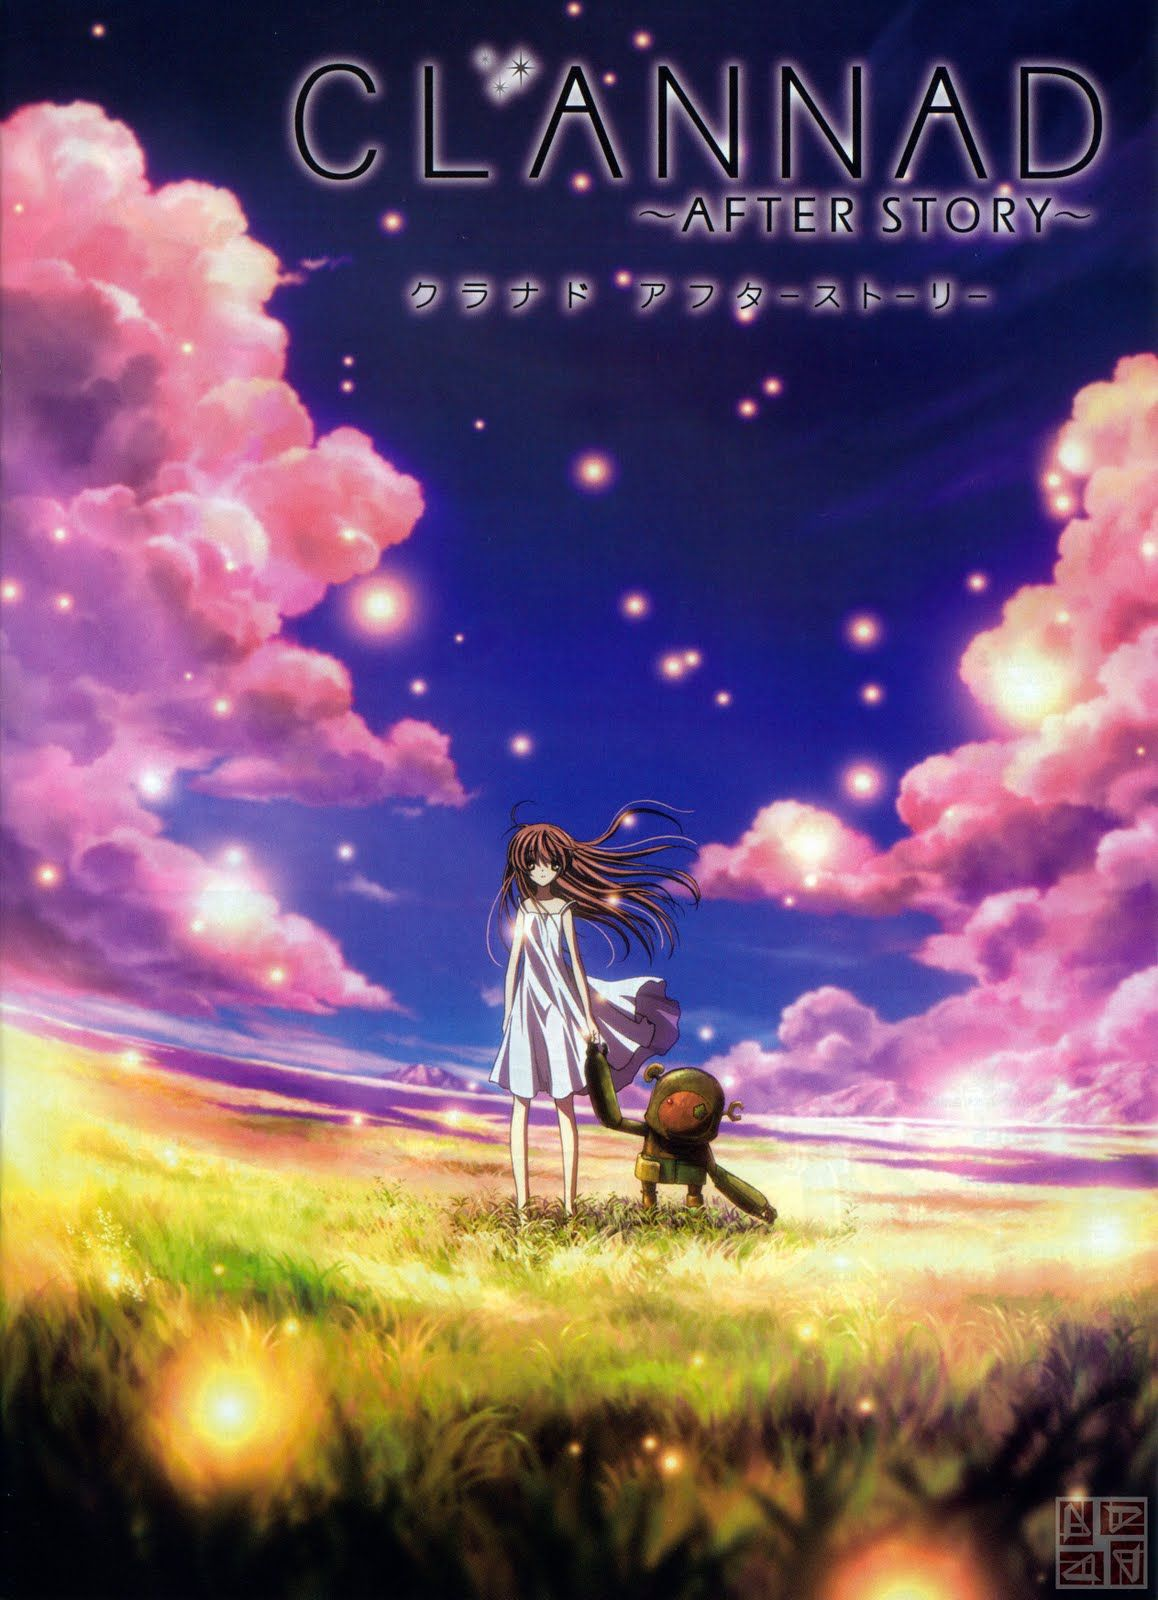 clannad after story anime movie